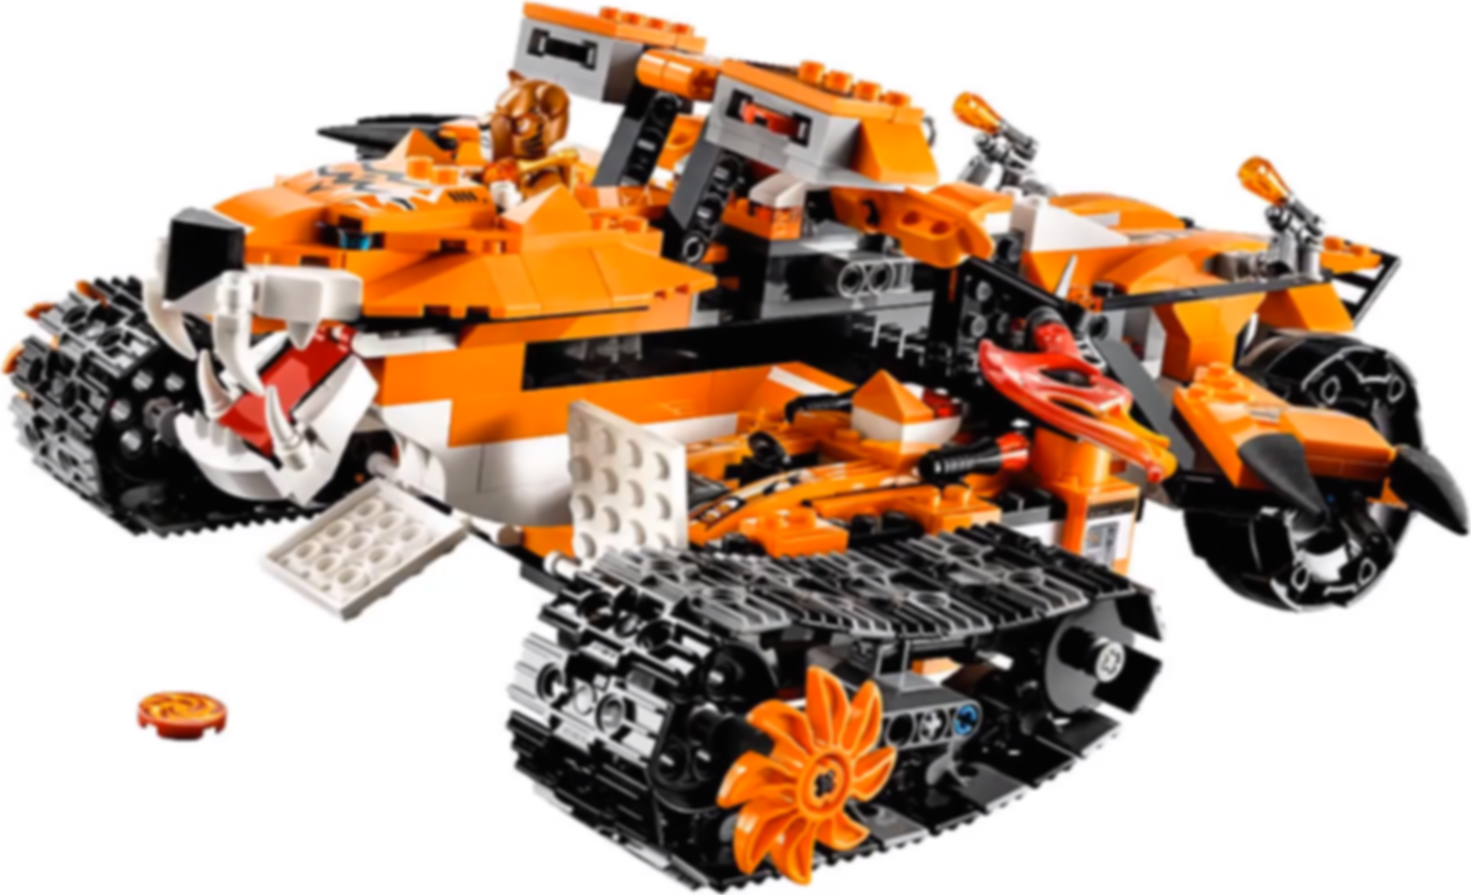 LEGO® Legends of Chima Tiger's Mobile Command gameplay